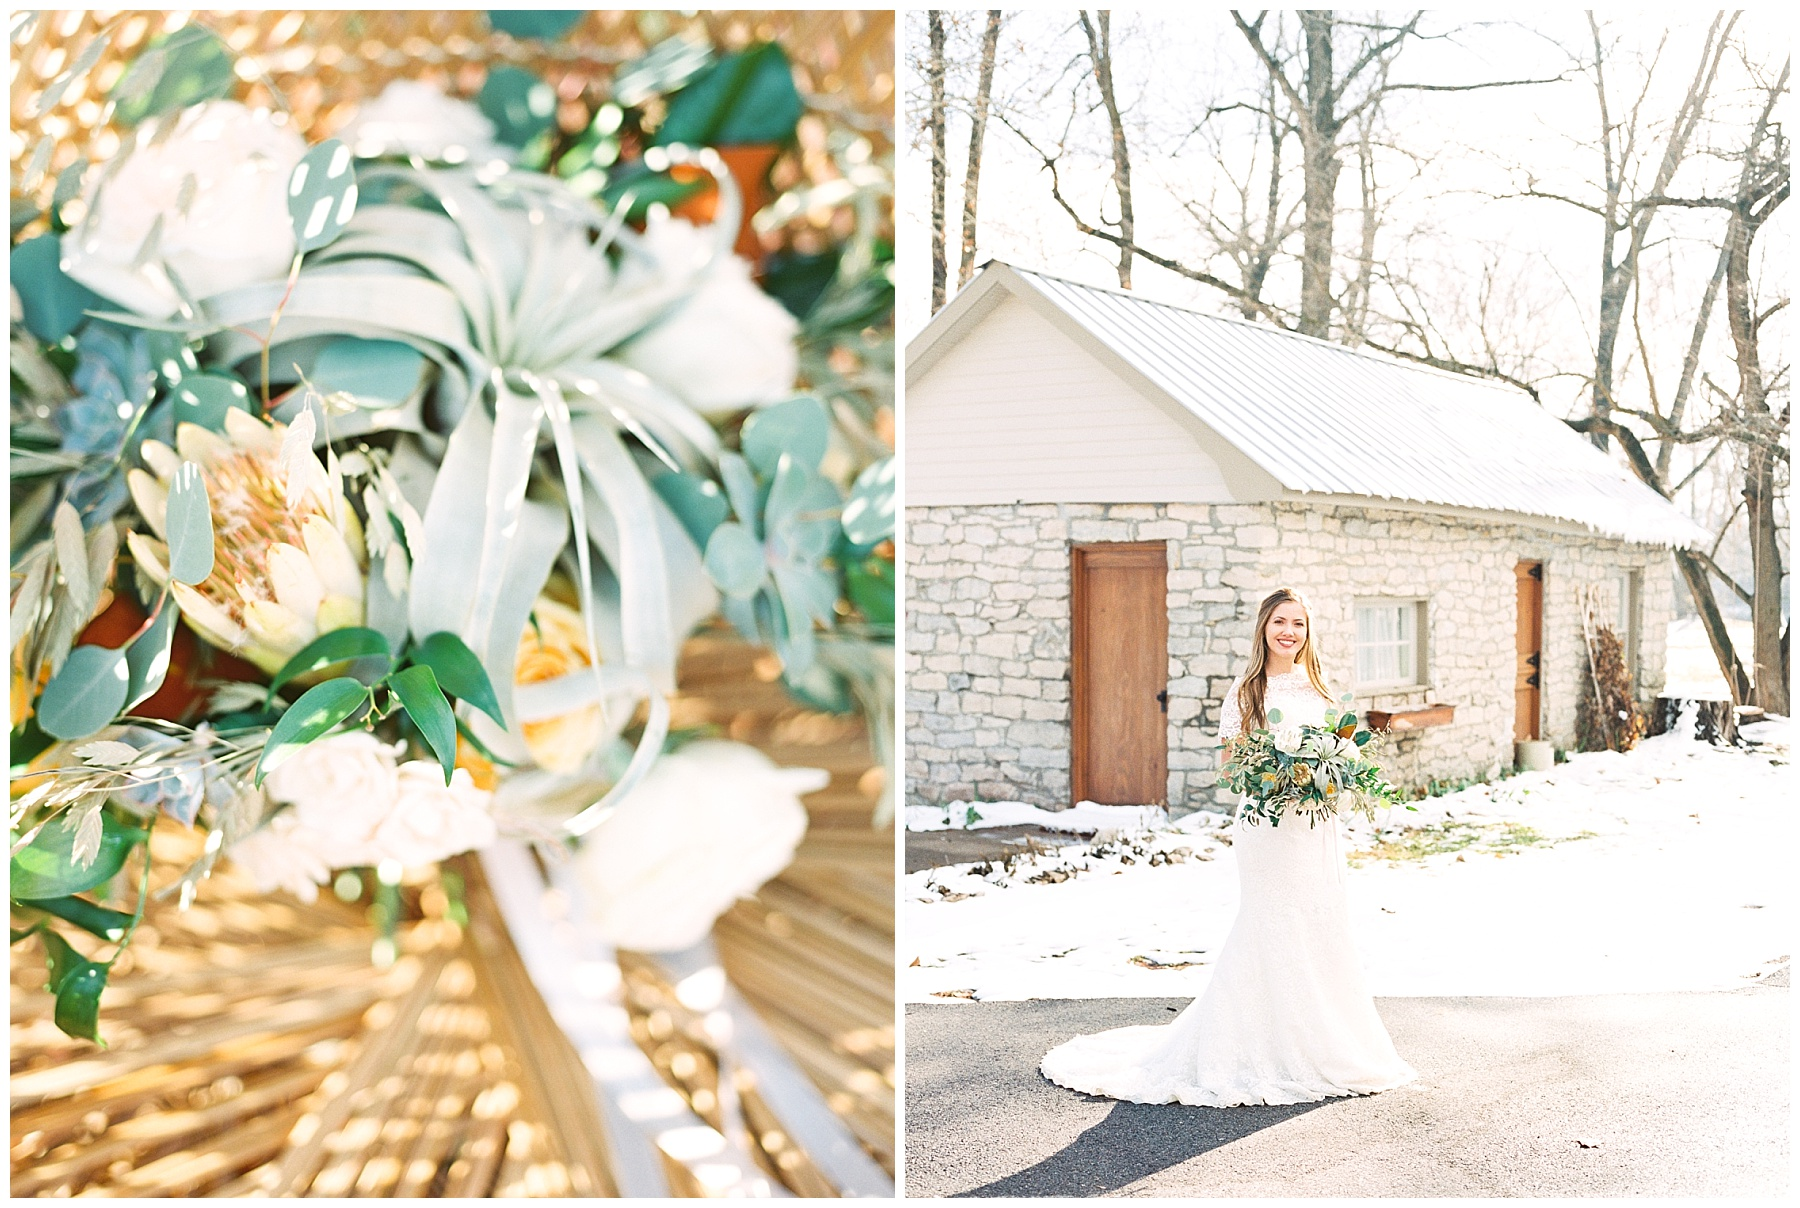 Snowy Winter Wedding at Wildcliff Events Lake With Earthy Jewel Tones and Organic Refined Style by Kelsi Kliethermes Photography Kansas City Missouri Wedding Photographer_0097.jpg